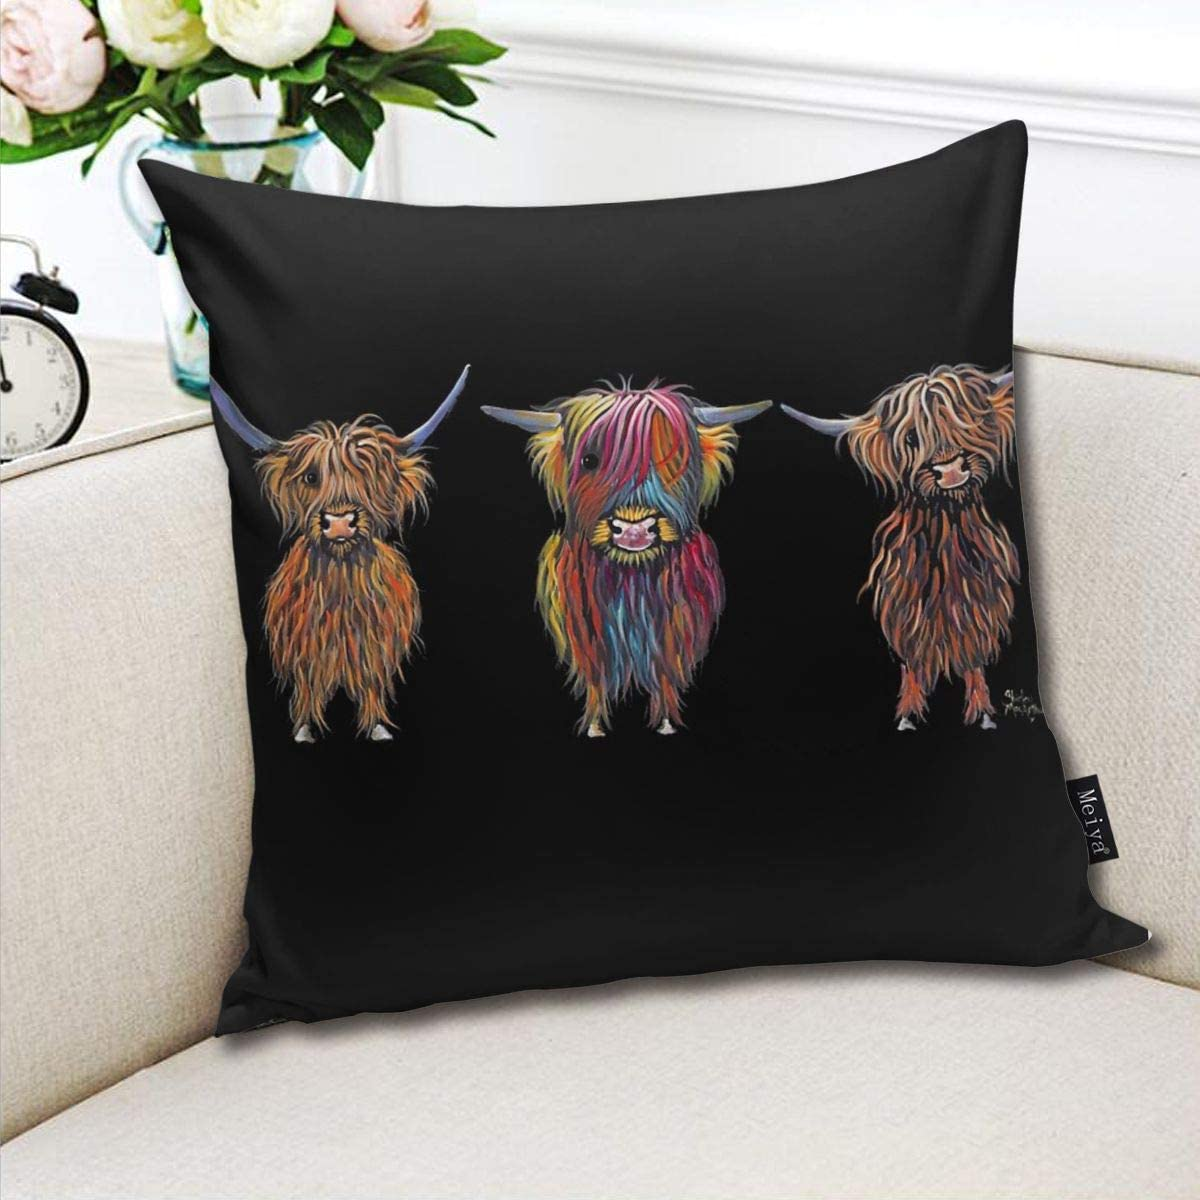 Scottish Hairy  All Three  by Shirley MacArthur Pillow Cover 18 x 18 inch Winter Holiday Farmhouse Cotton Cushion Case Decoration for Sofa Couch BLUETOP Highland Cows Print